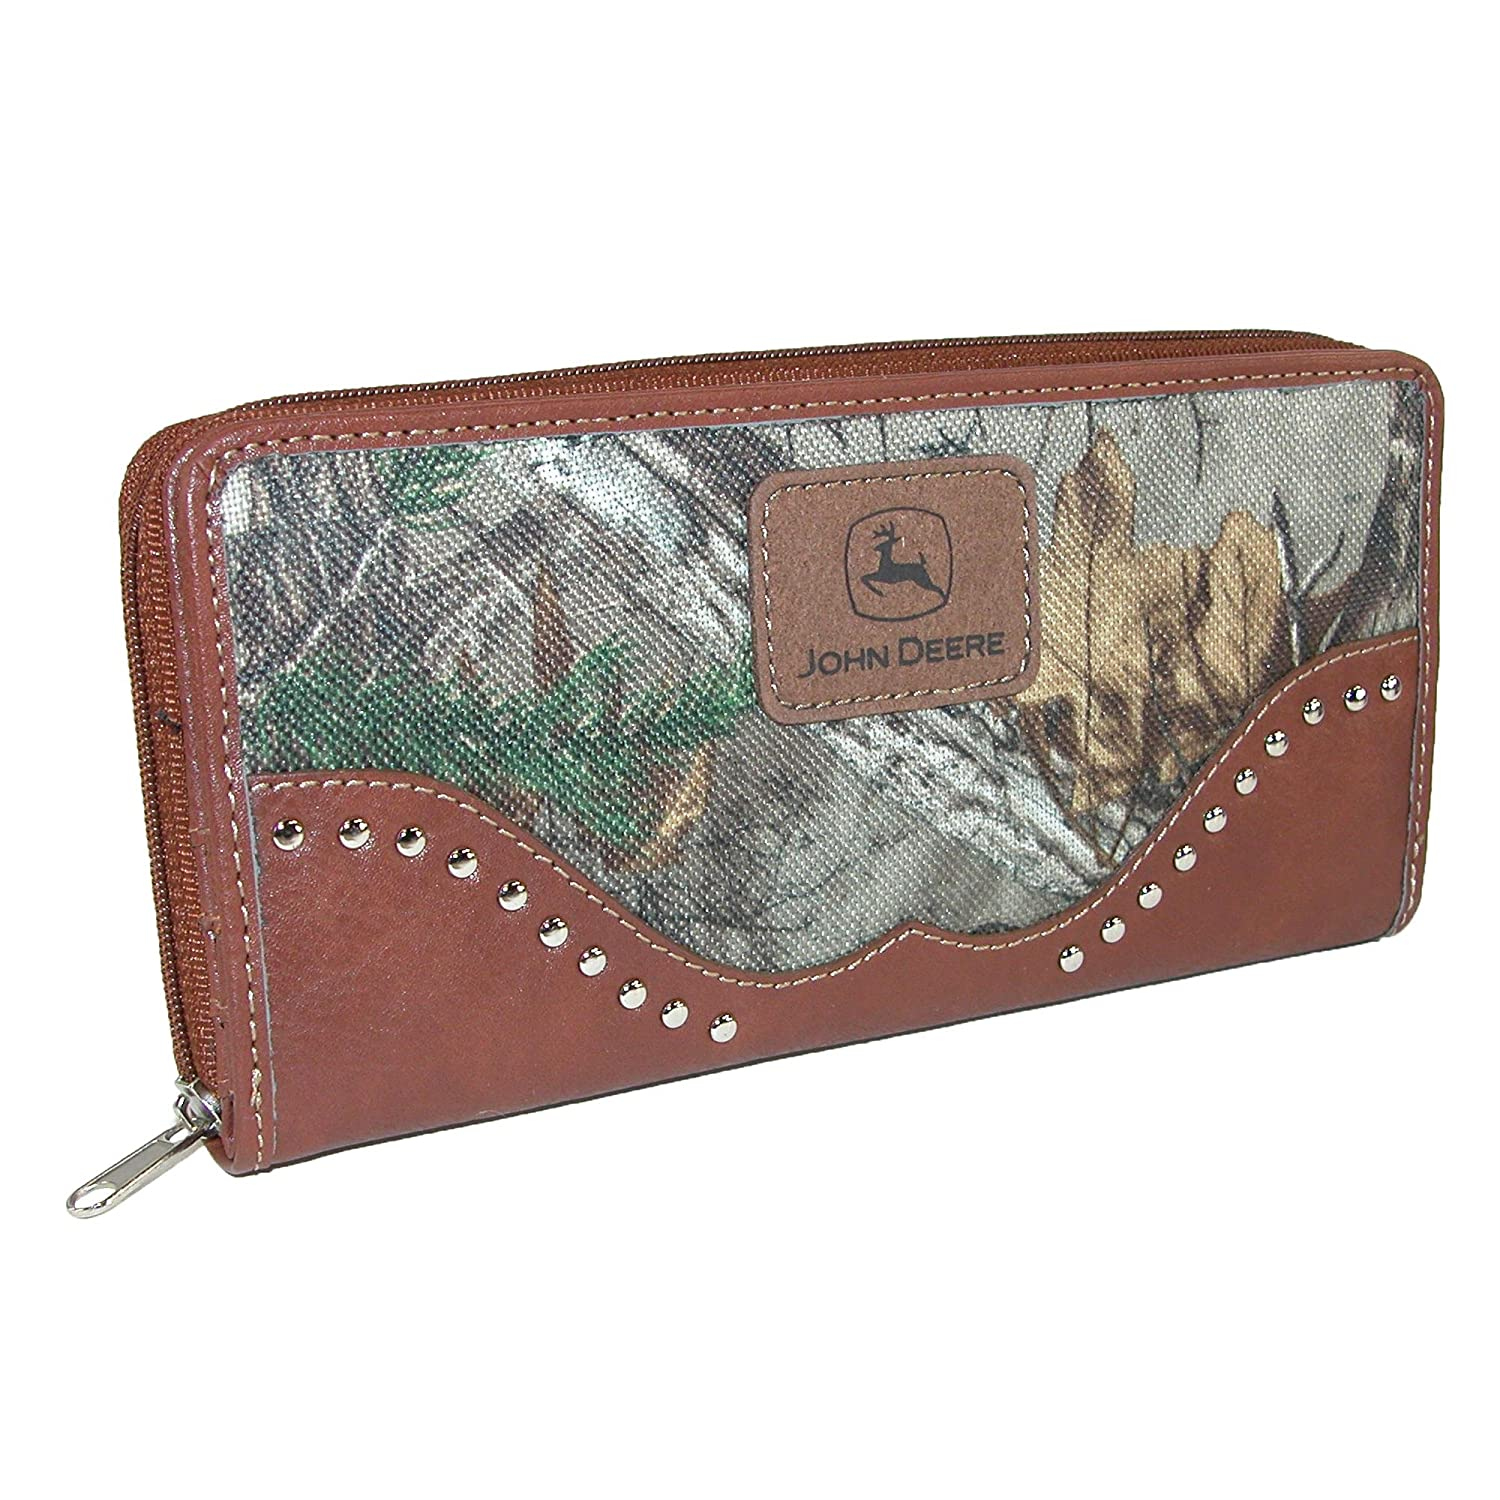 Theft Proof Leather Wallet for Men /& Women RFID Blocking Passport Holder Farm Animals 5 Slots